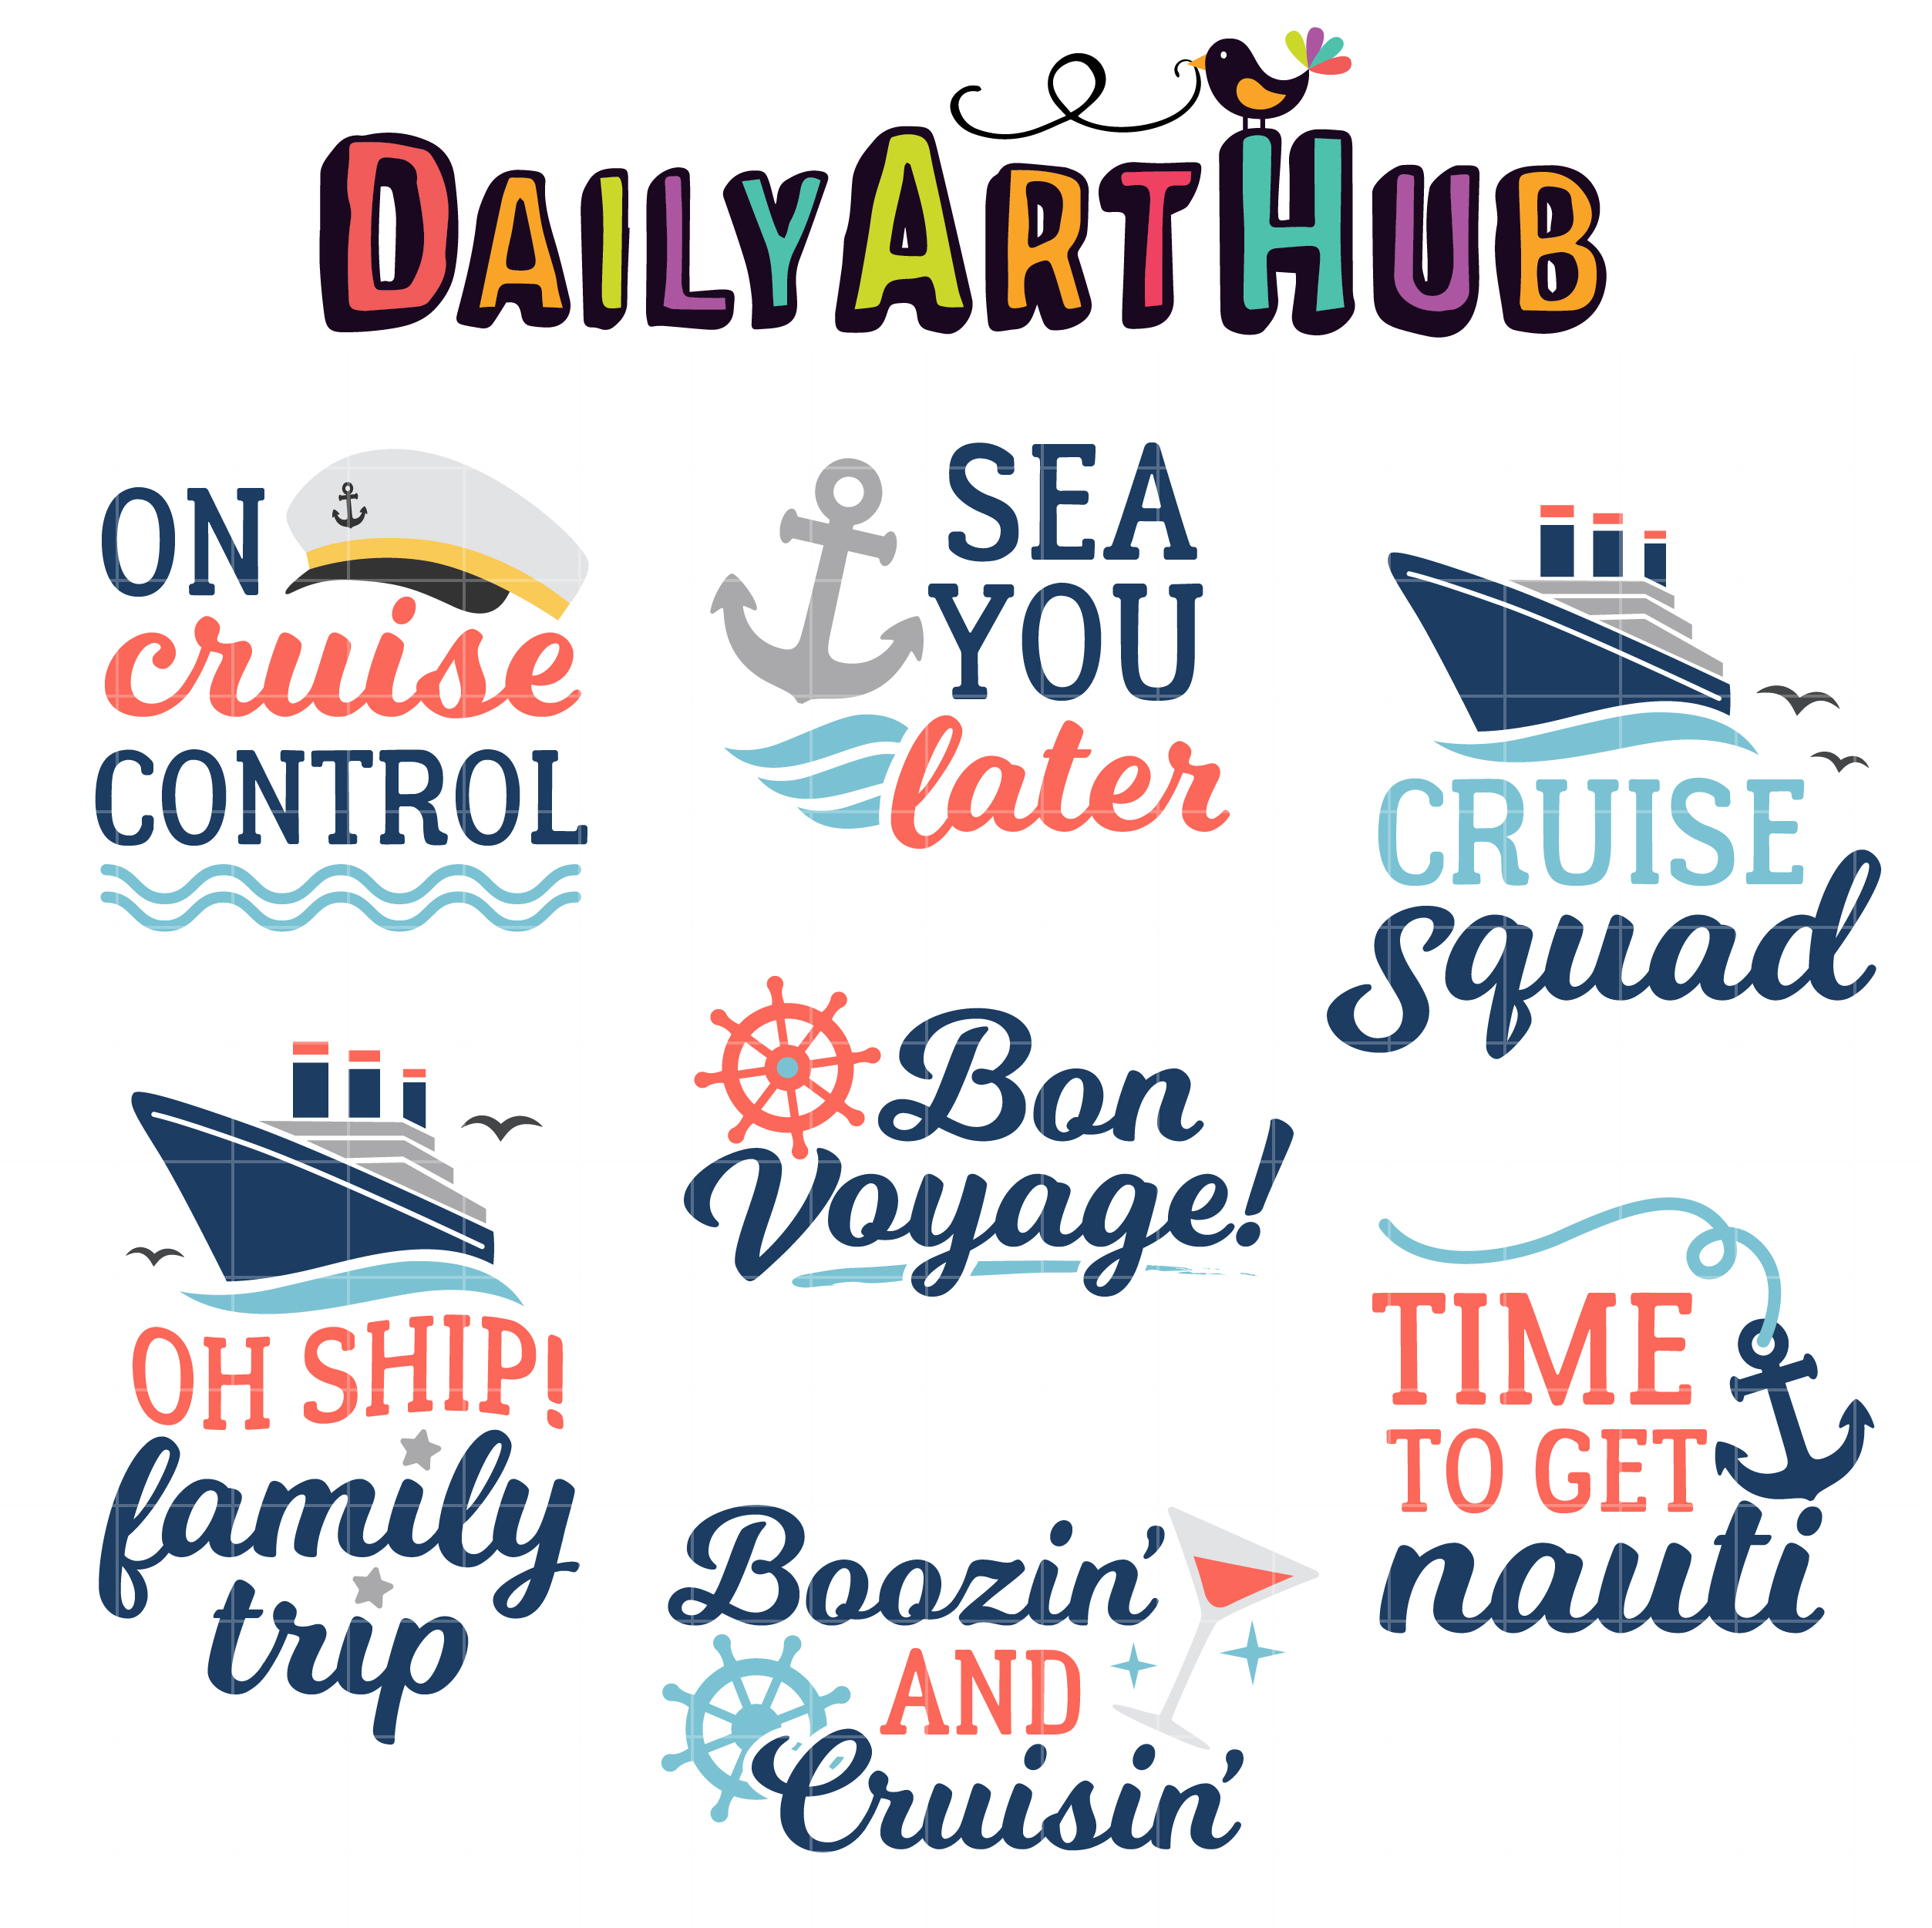 Cruise Quotes Clip Art Set Daily Art Hub Free Clip Art Everyday